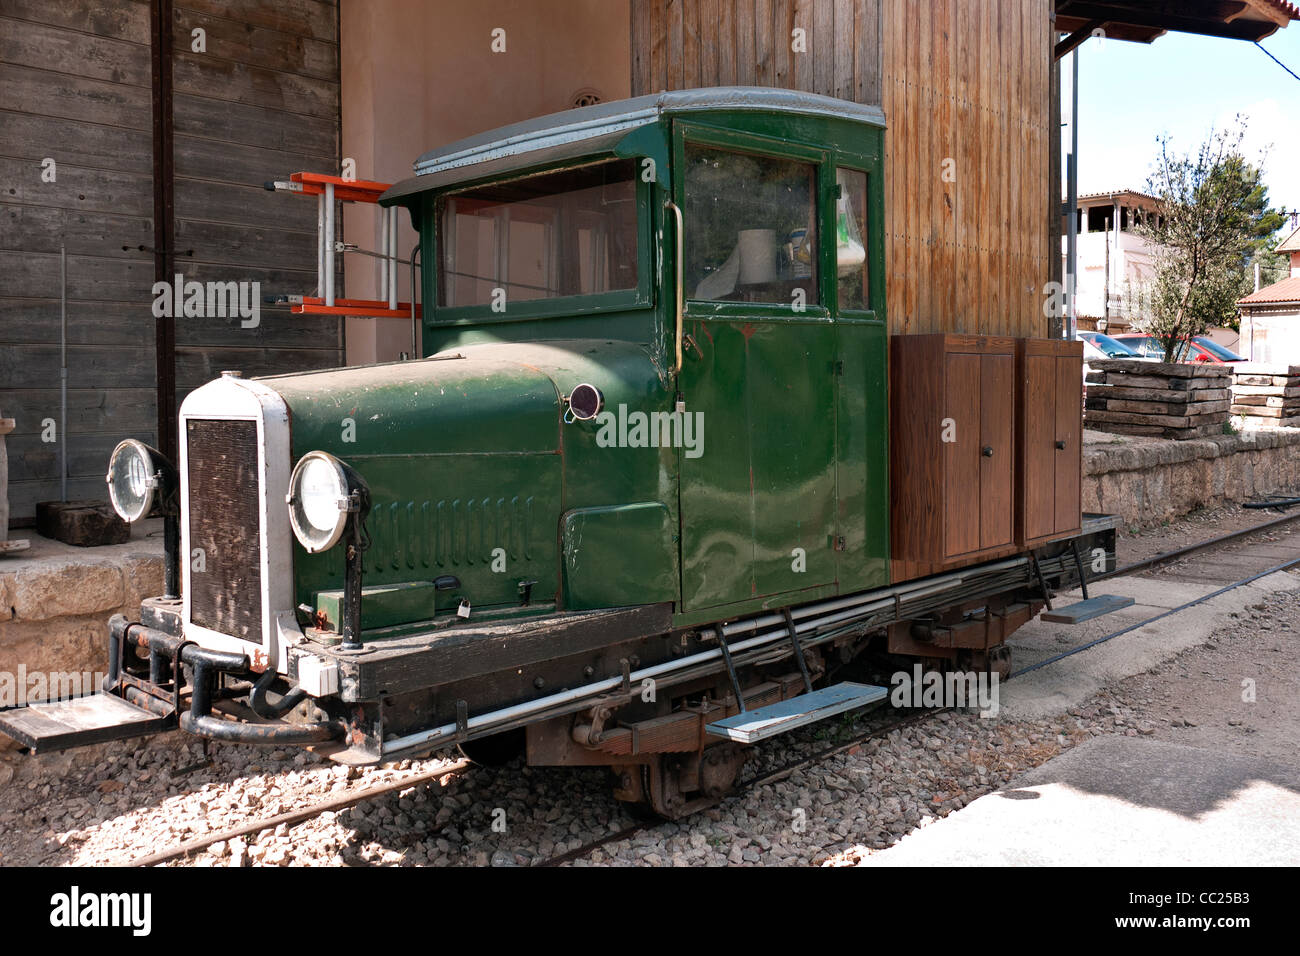 Maintenance lorry converted to run on the historic electric railway which runs from  Palma to Soller railway - Stock Image